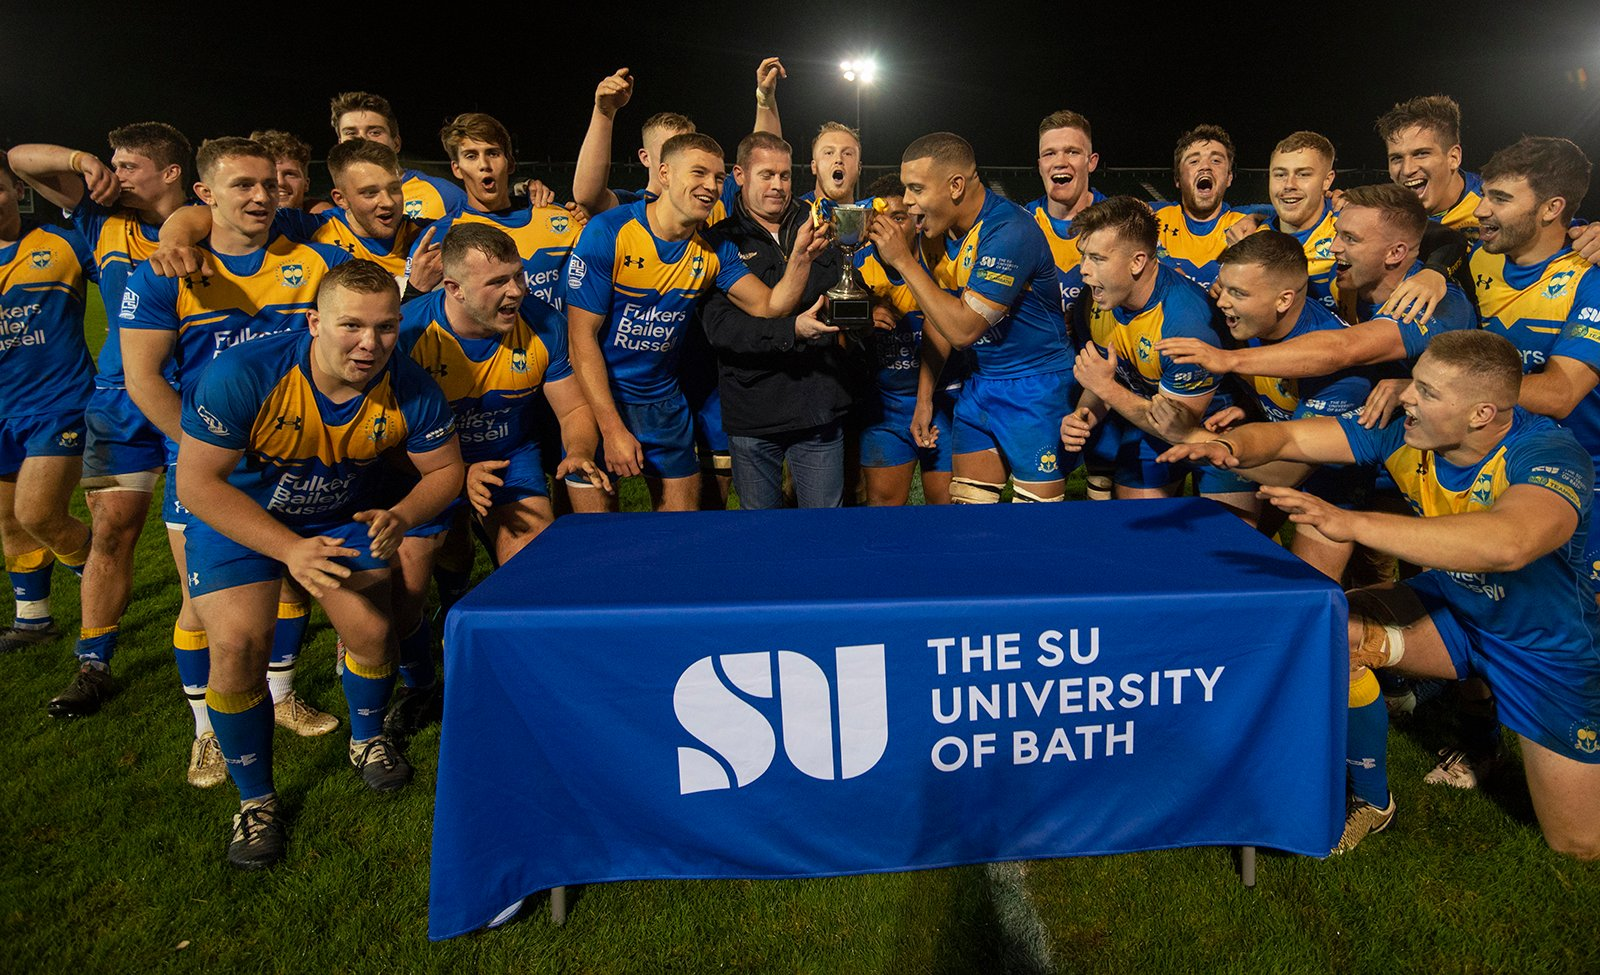 UBRFC Men's 1st XV celebrate victory at the 2019 Superleague Anniversary Match